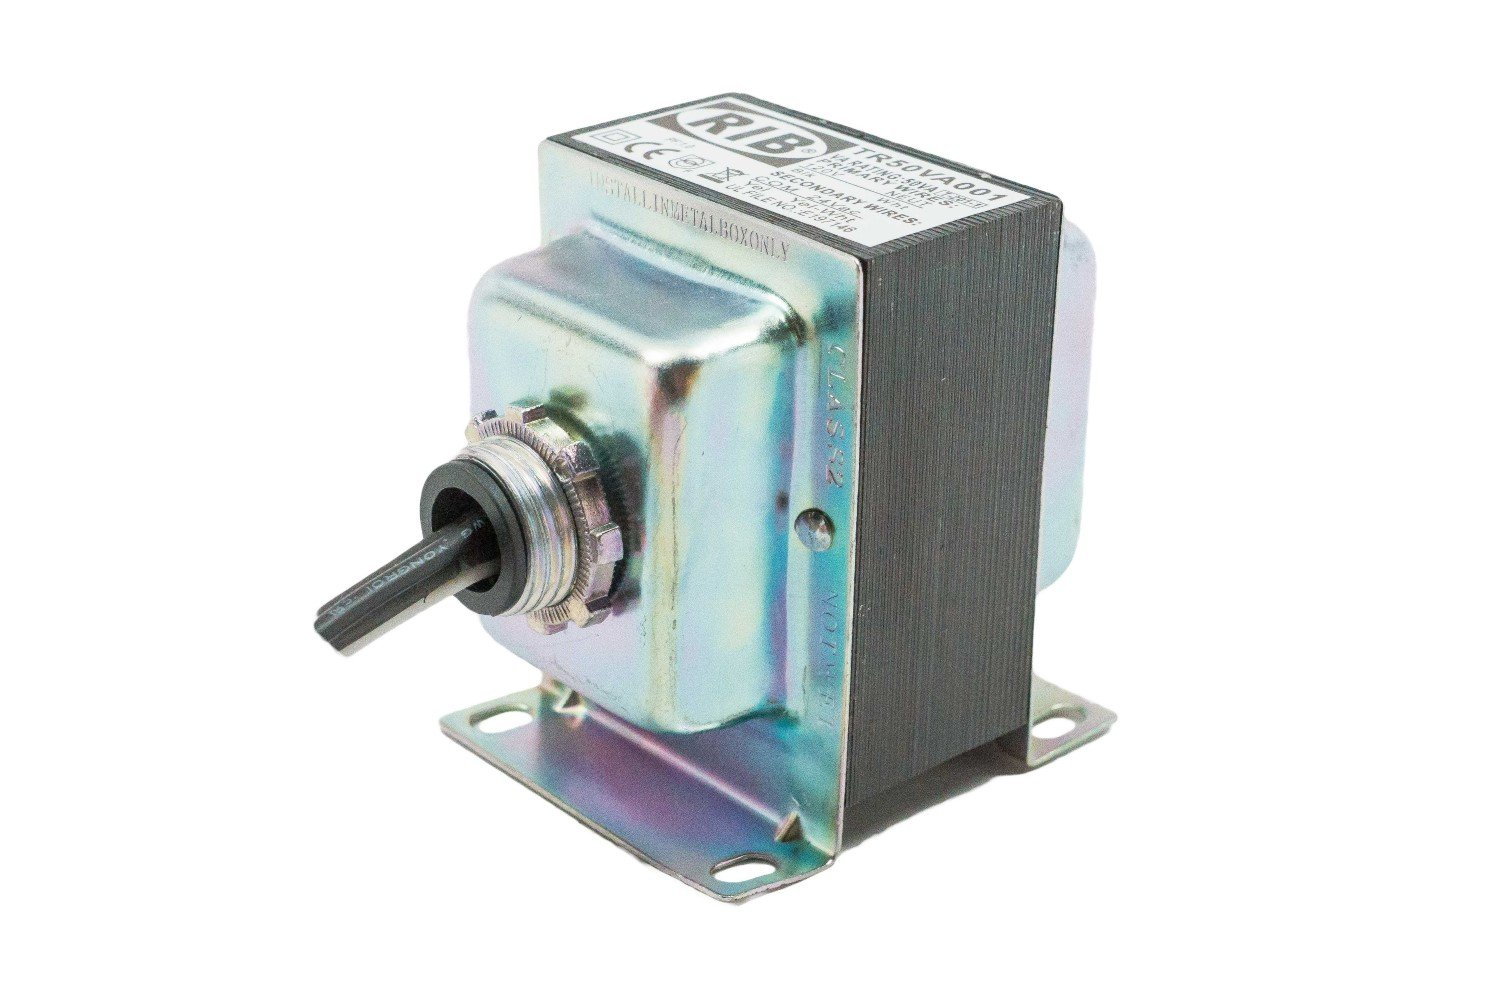 Functional Devices TR50VA001 Transformer, 50Va, 120 to 24 Vac, Foot and Single Threaded Hub Mount